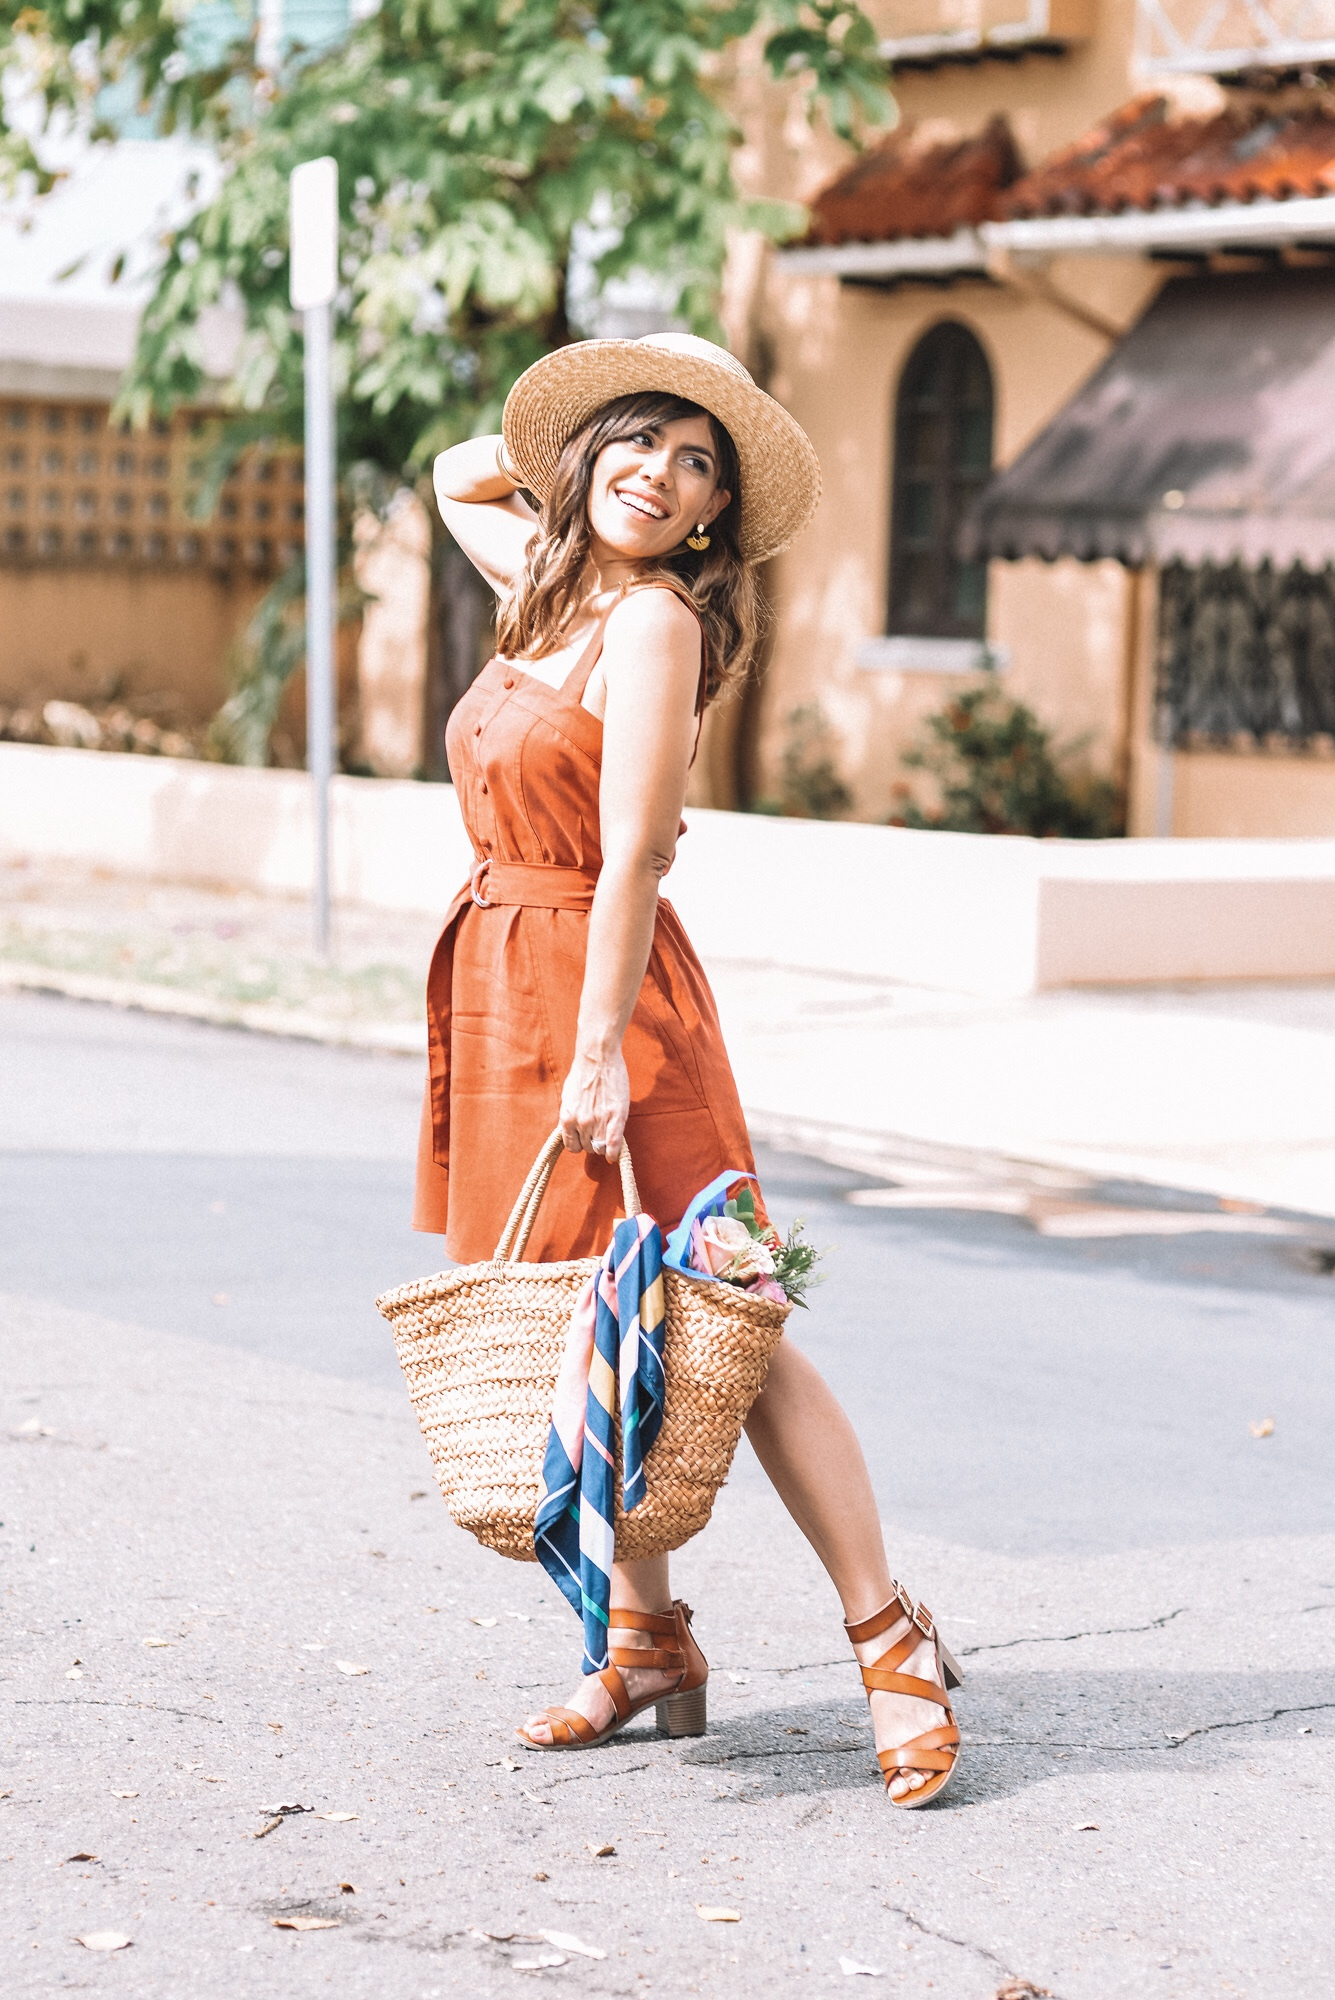 Dress buy  here  | Shoes buy similar  here  | Straw beach bag buy  here | Scarf buy similar  here